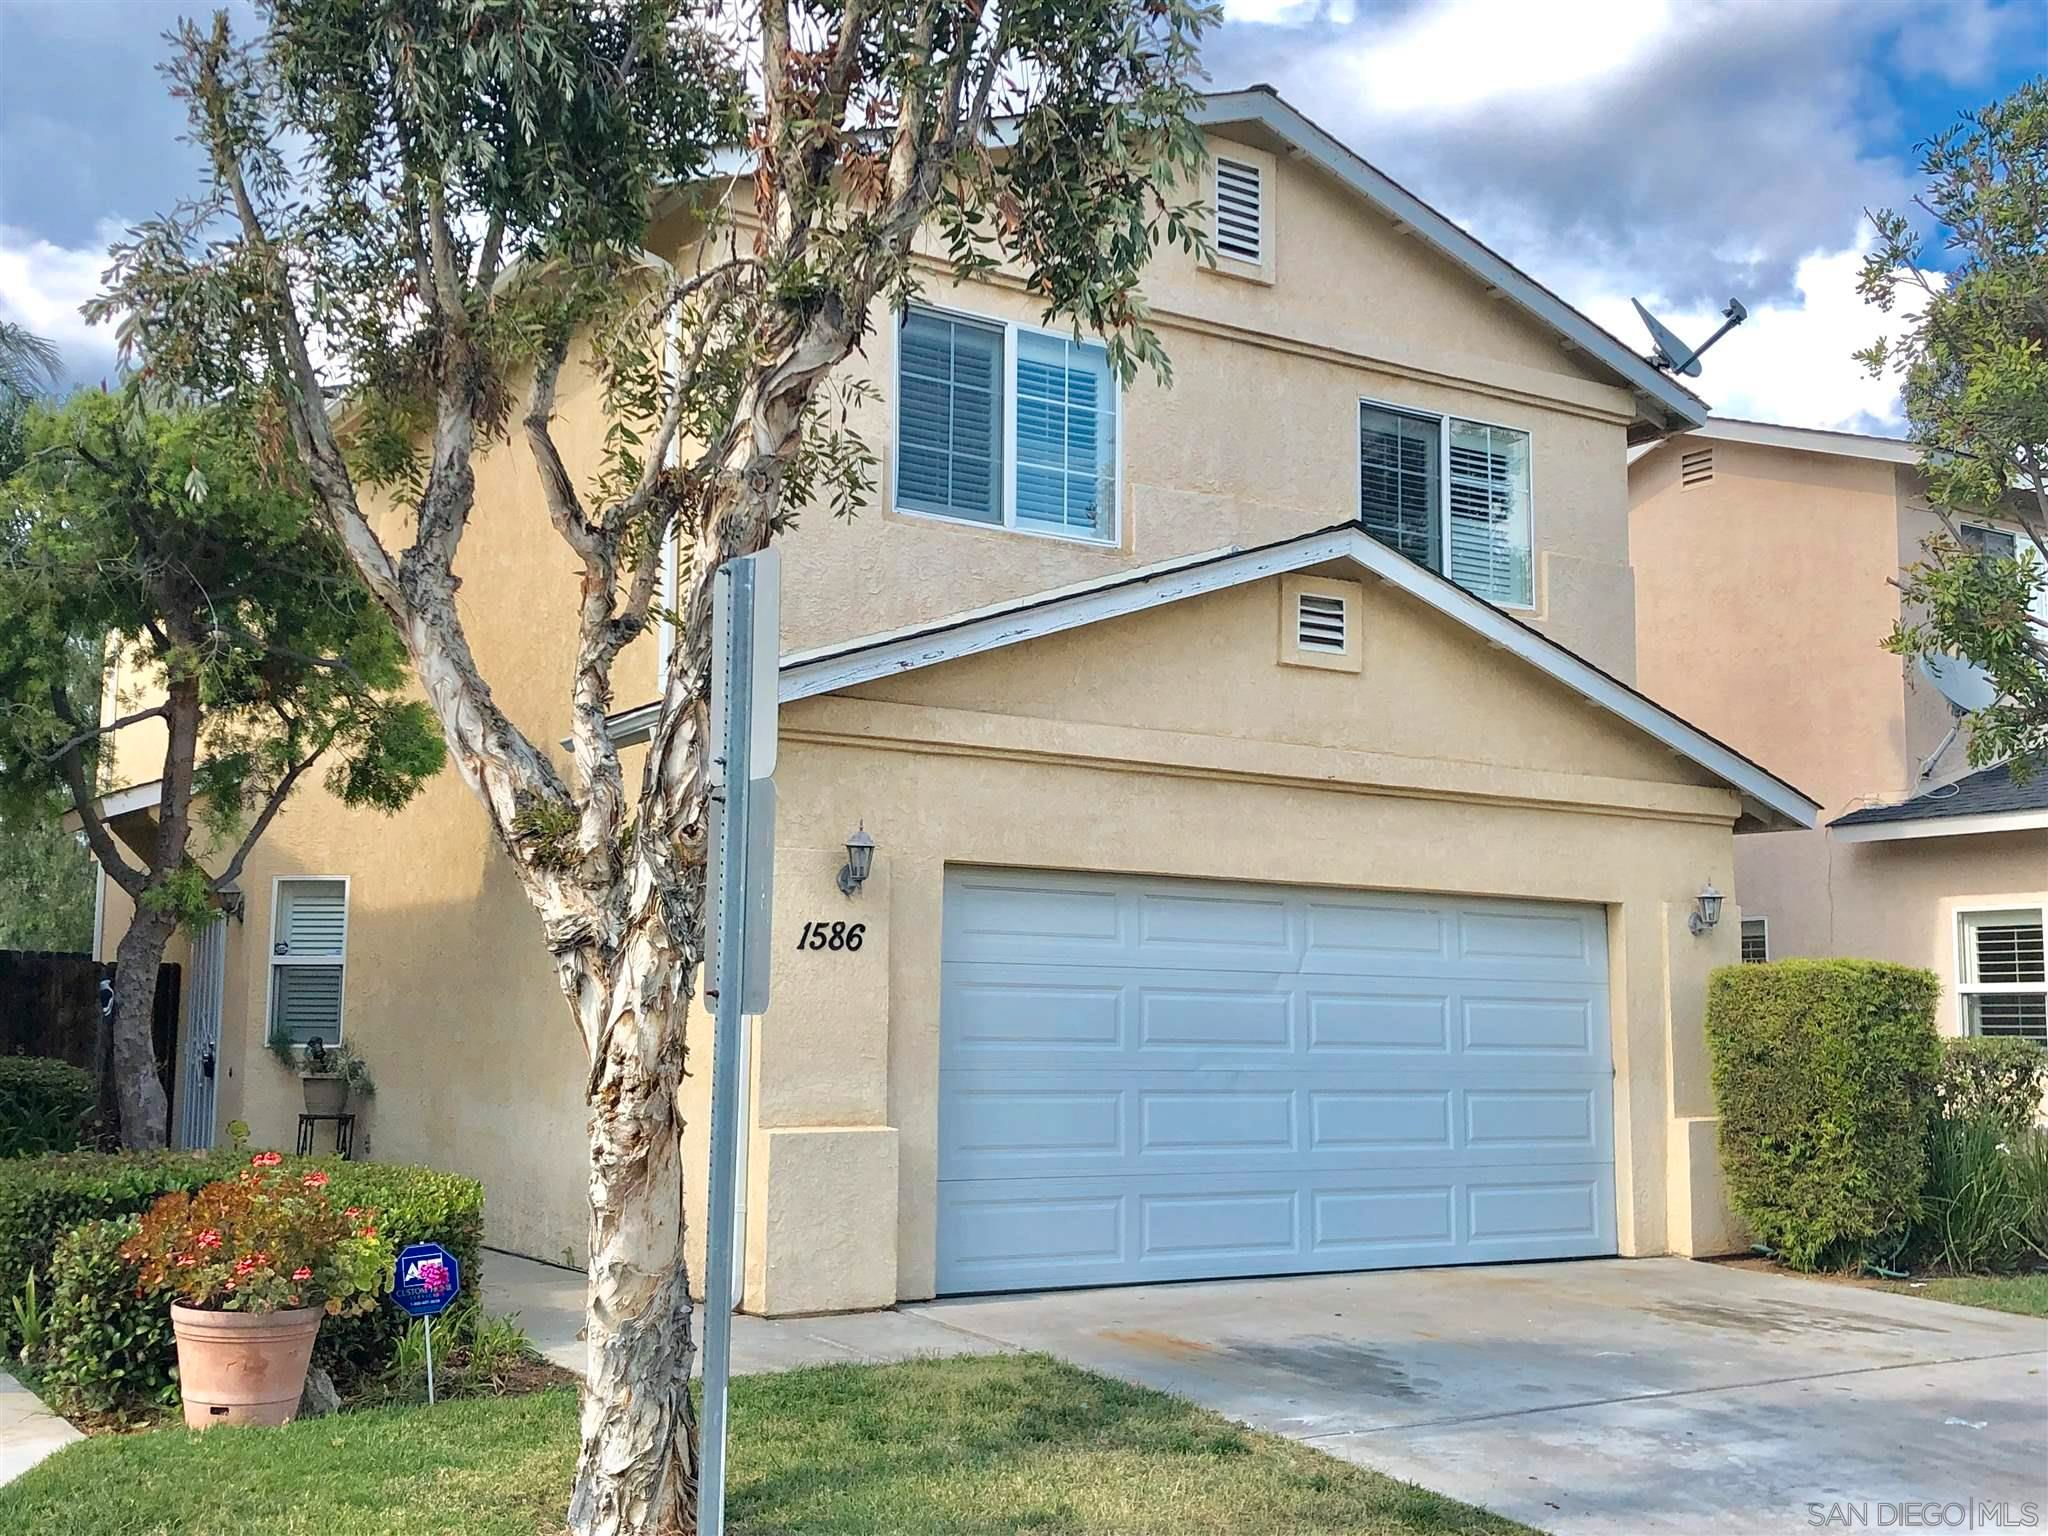 Main Photo: EL CAJON House for sale : 3 bedrooms : 1586 Rebecca Ln